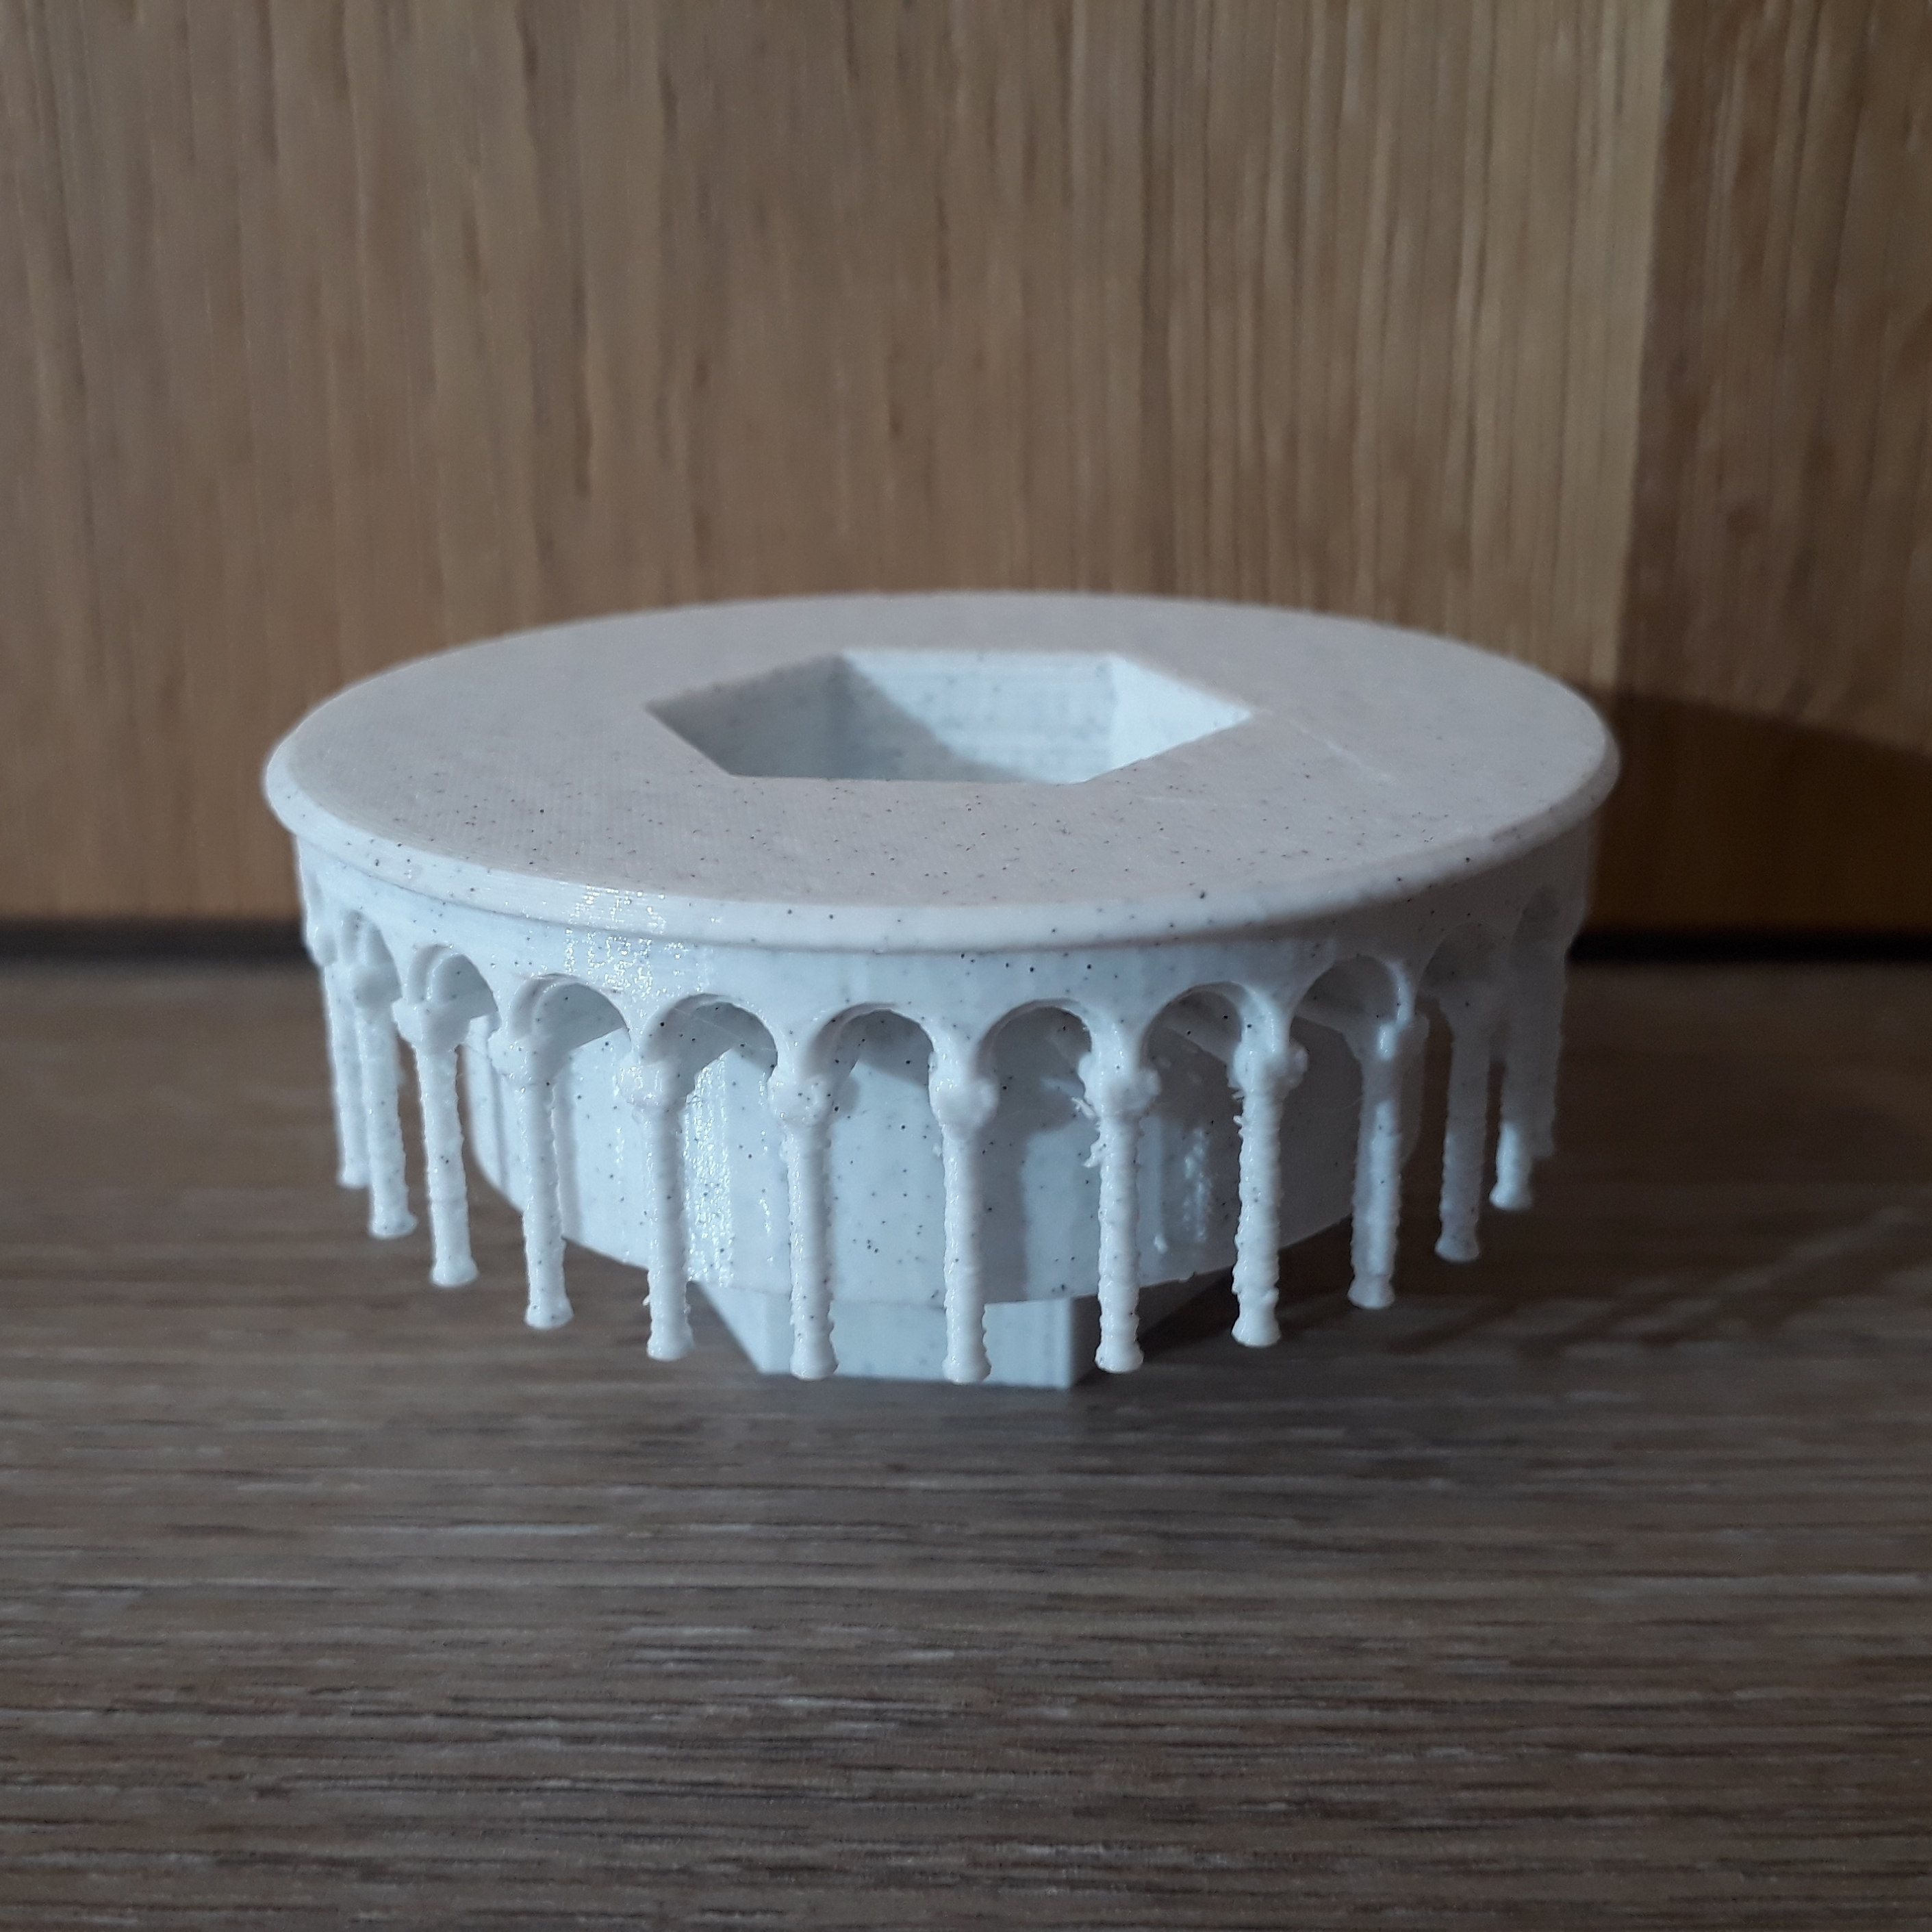 20200212_104159.jpg Download STL file Leaning Tower of Pisa • 3D printing object, Chrisibub